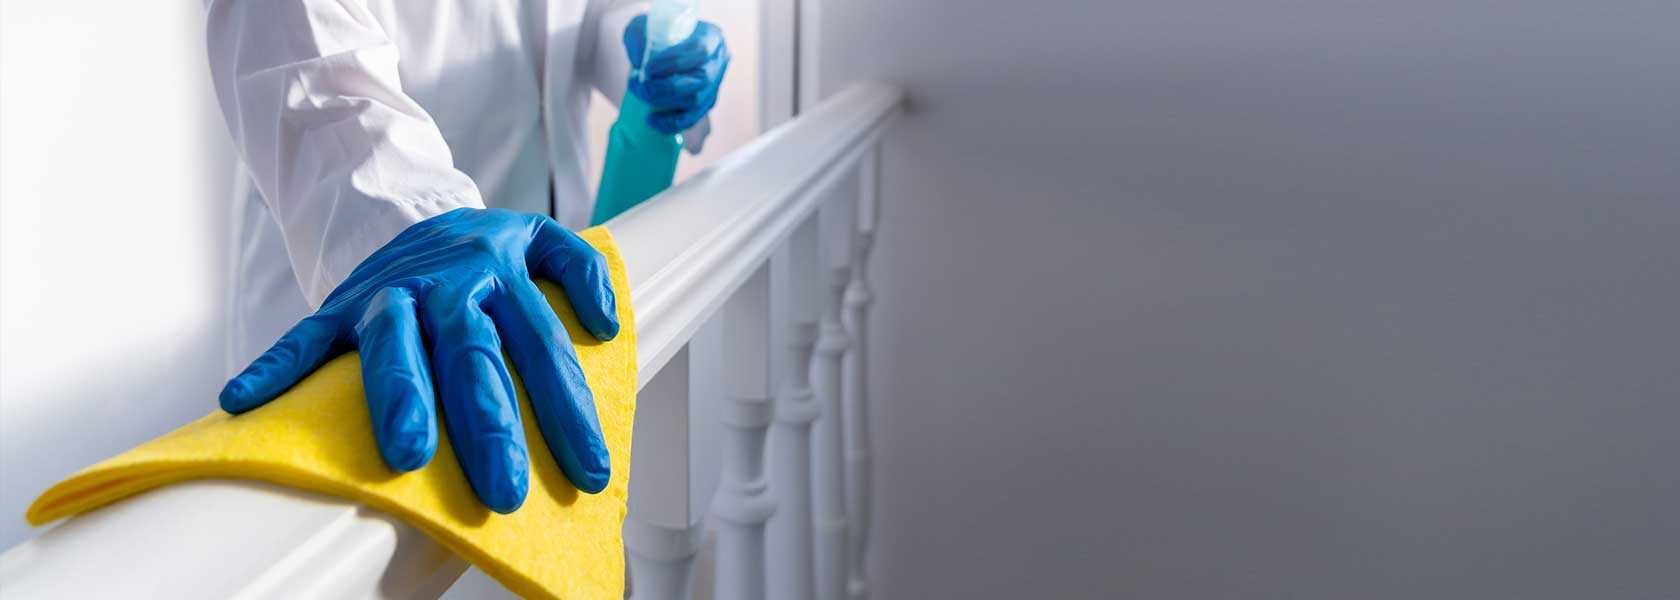 Home Deep Cleaning Guide